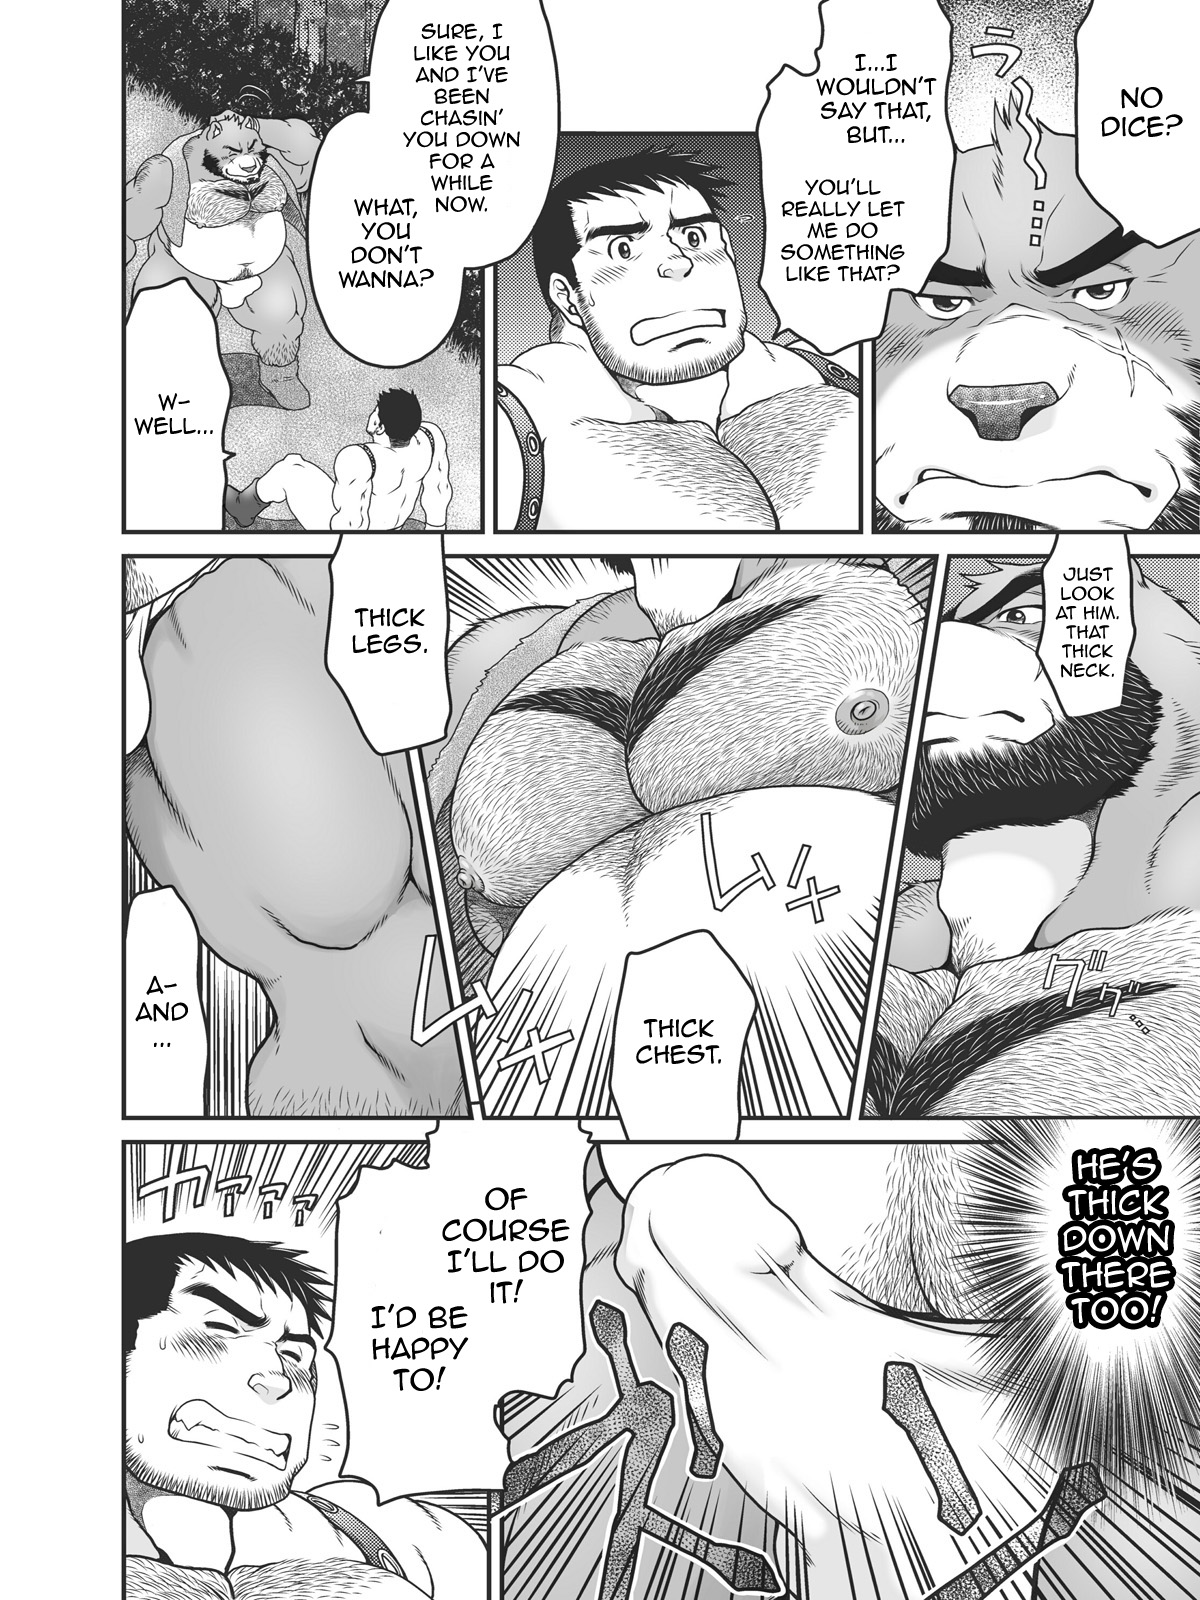 Doujin sexy cette